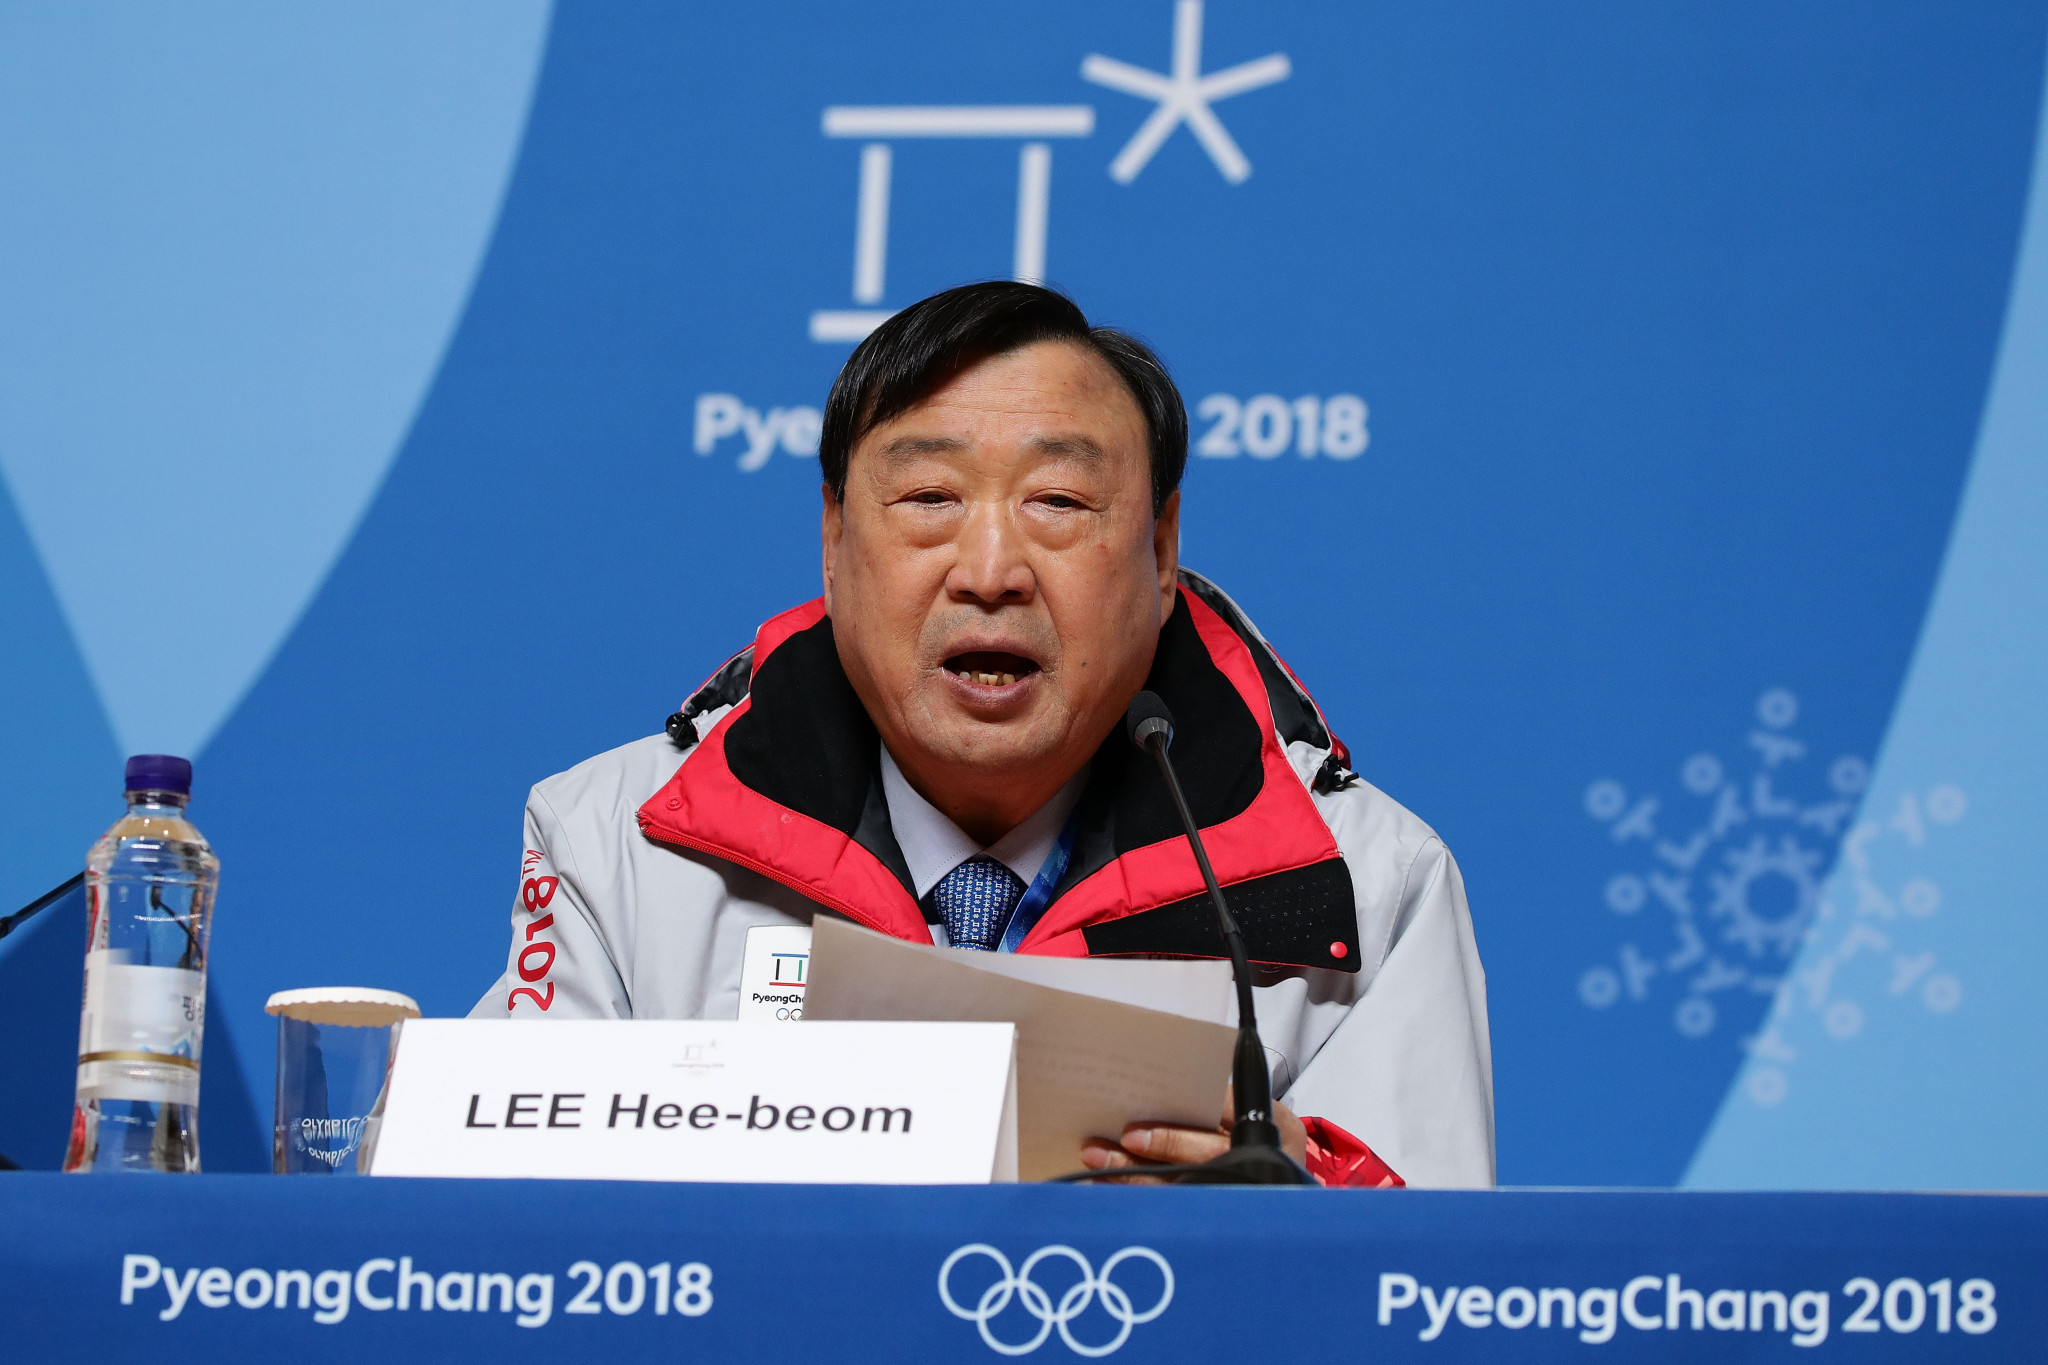 Pyeongchang 2018 President Lee Hee-beom claimed 74 per cent of tickets for the Winter Olympics had been purchased so far but some remain for the Opening Ceremony on February 9 ©Getty Images